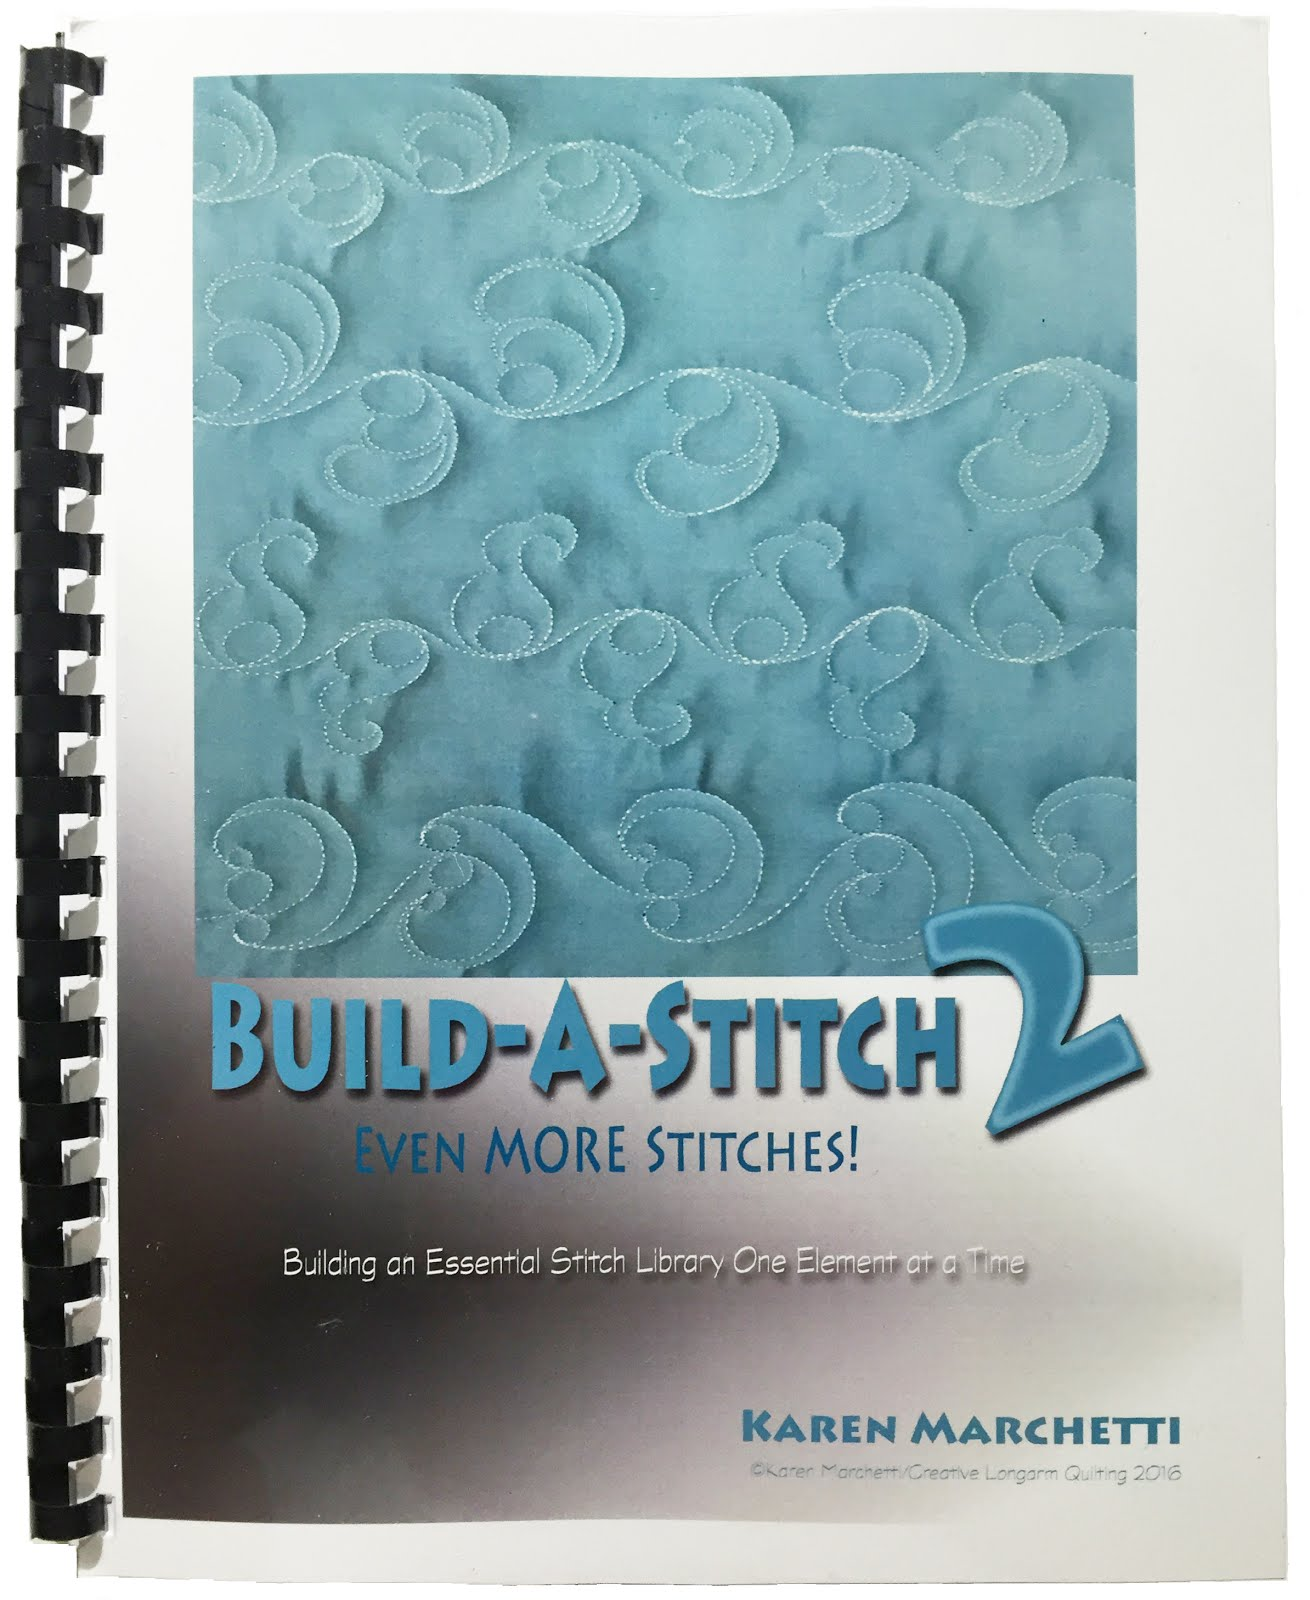 BUILD-A-STITCH 2 IS HERE!